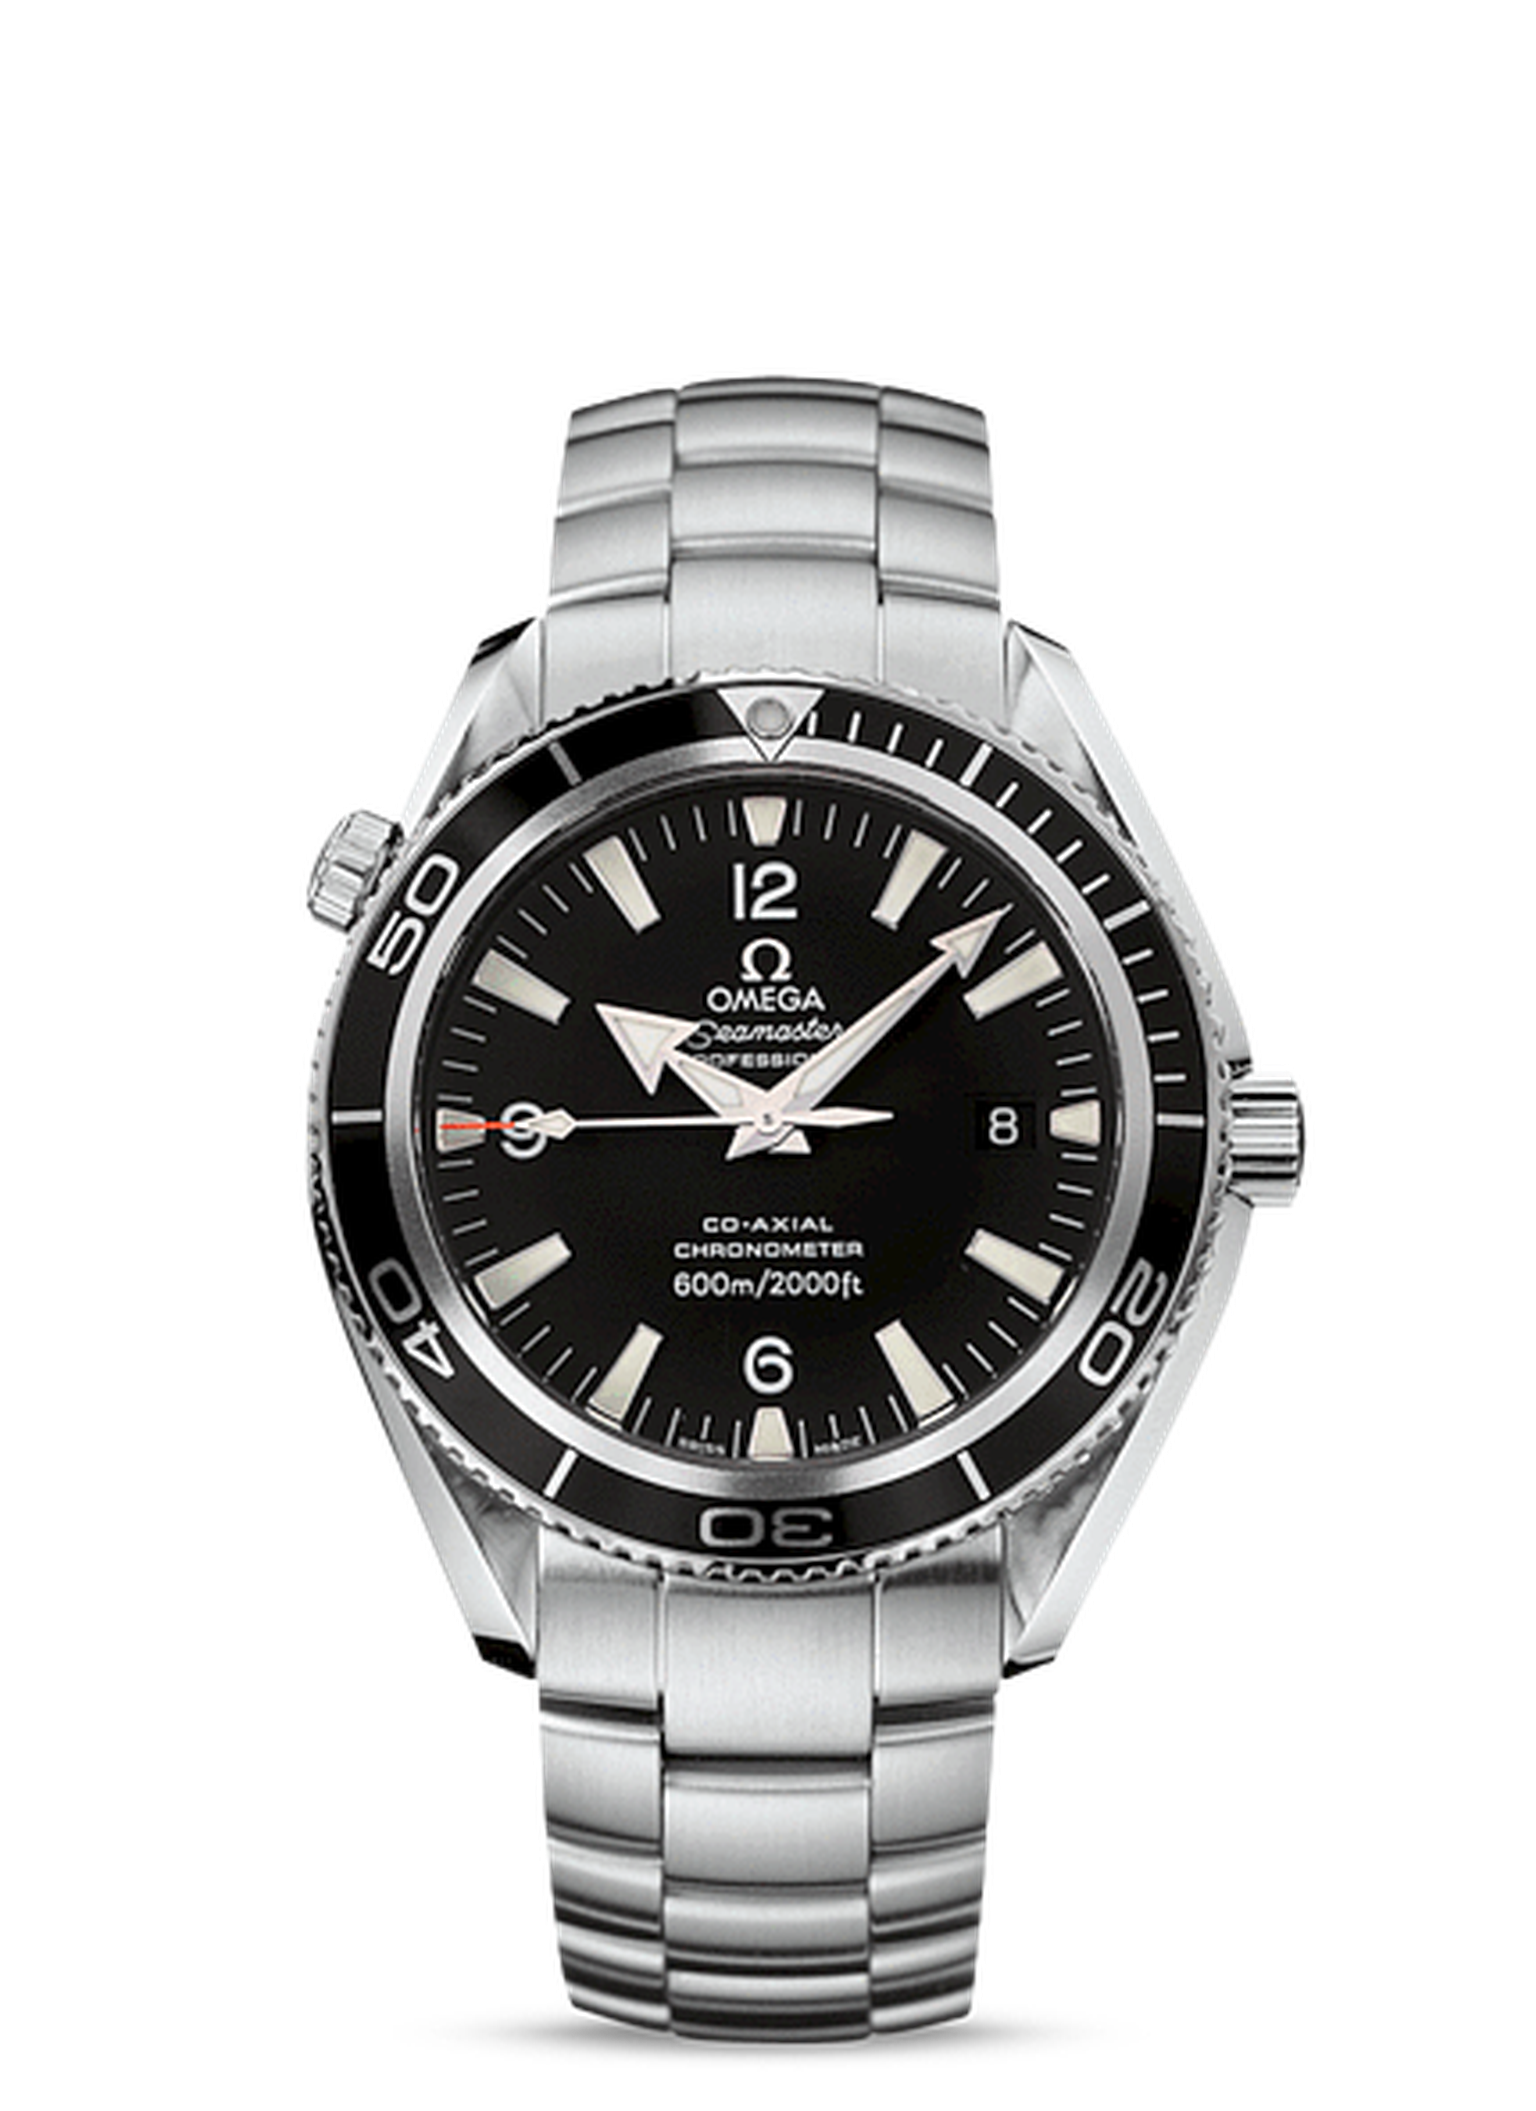 Like 007's watch in Quantum of Solace, the Omega Seamaster Planet Ocean 600m watch features a sturdy 45.5 mm Co-Axial chronometer movement.